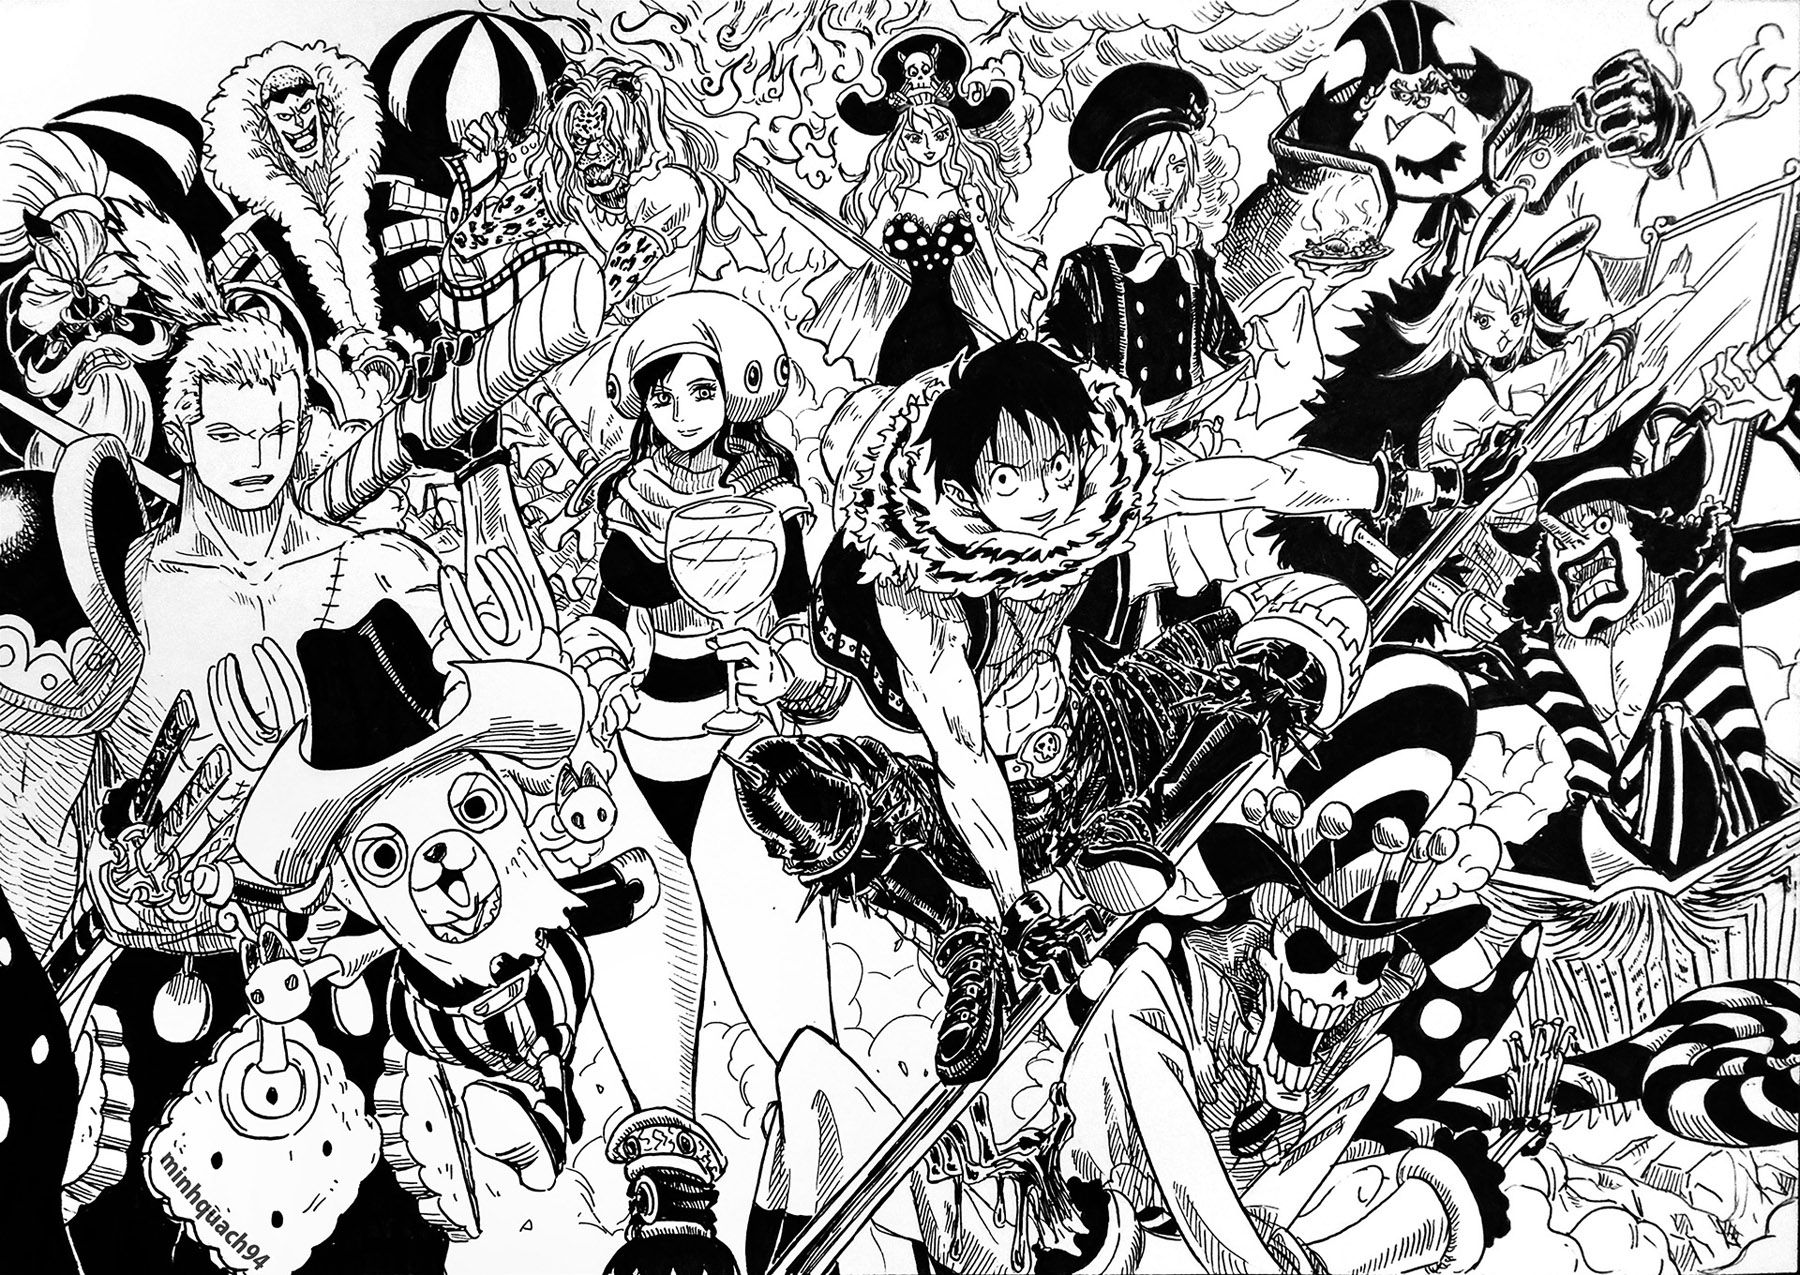 Read manga One Piece 885 - It's Brulee! online in high